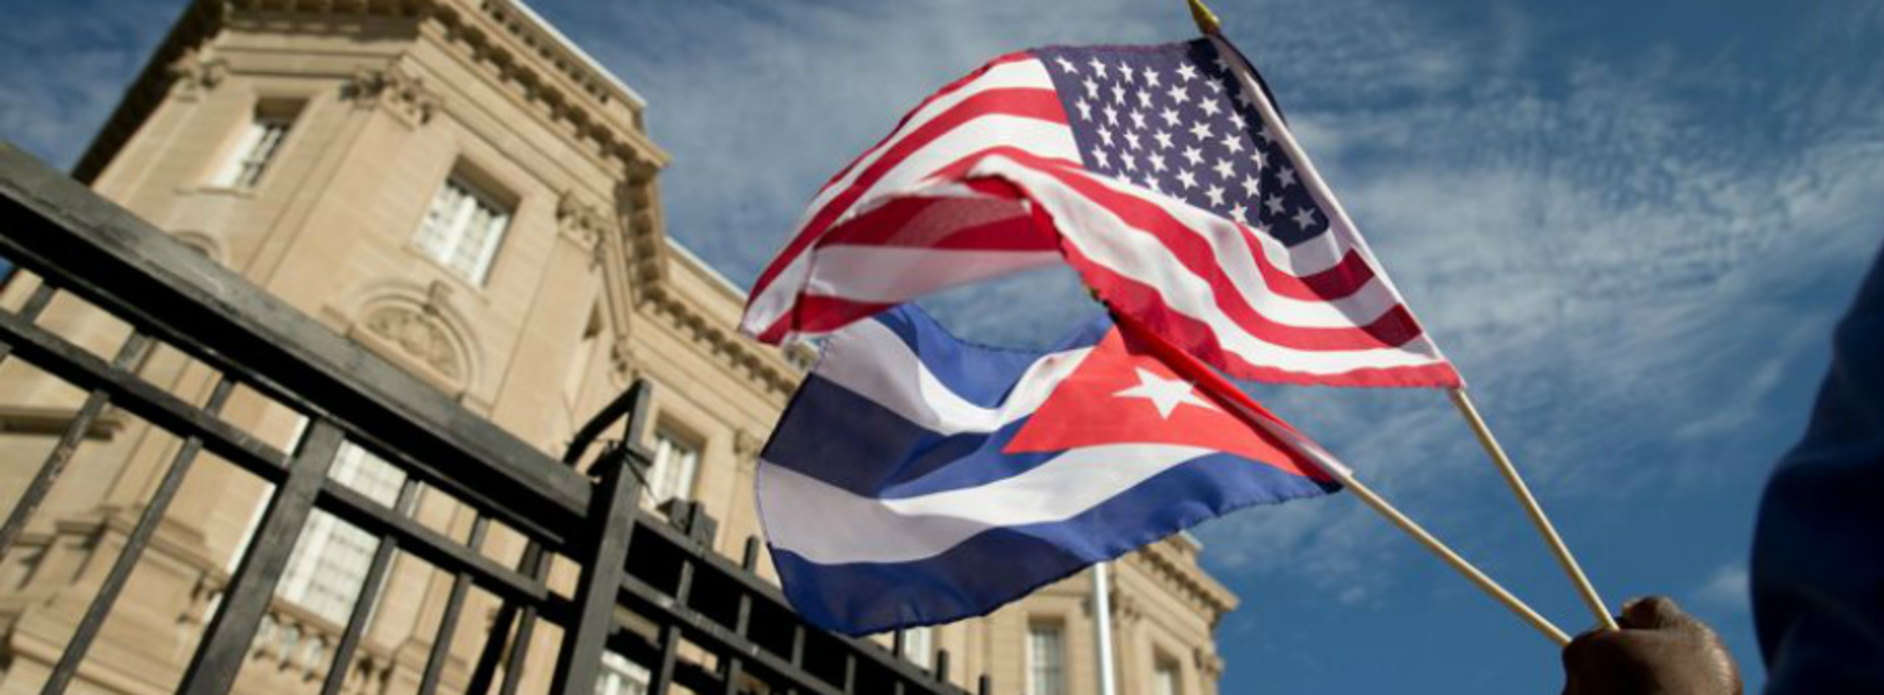 Is It Time to Open up to Cuba?